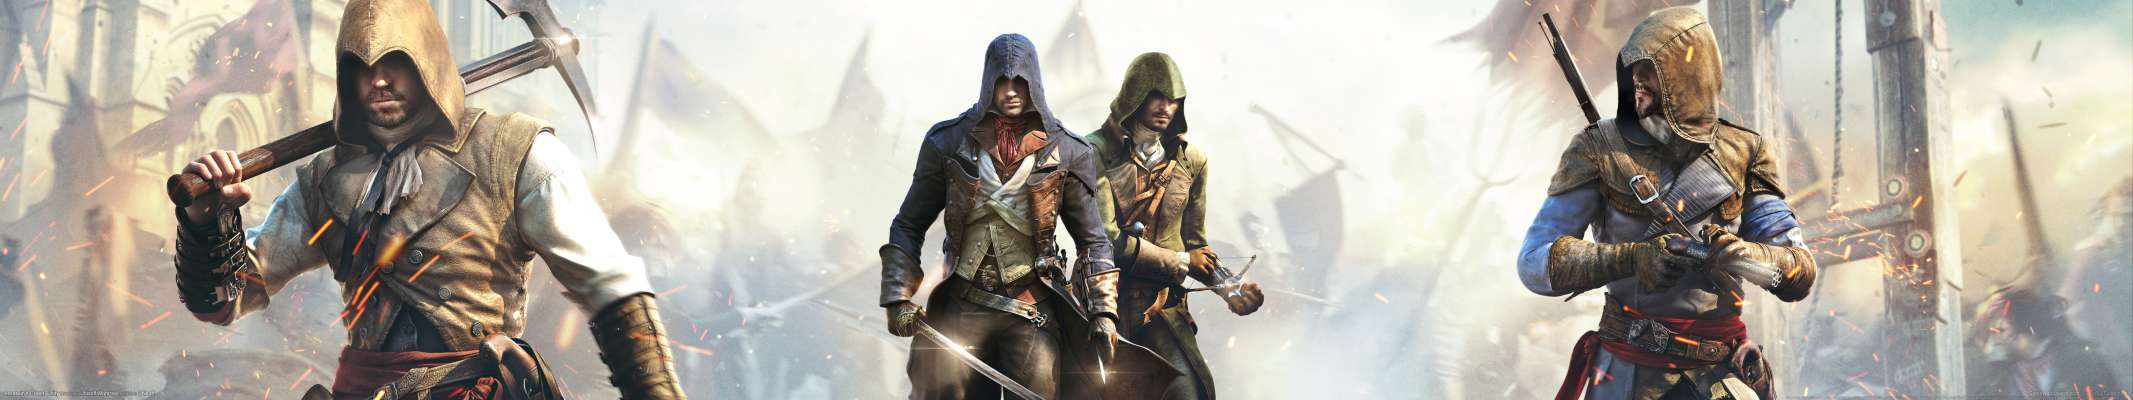 Assassin's Creed: Unity triple screen achtergrond